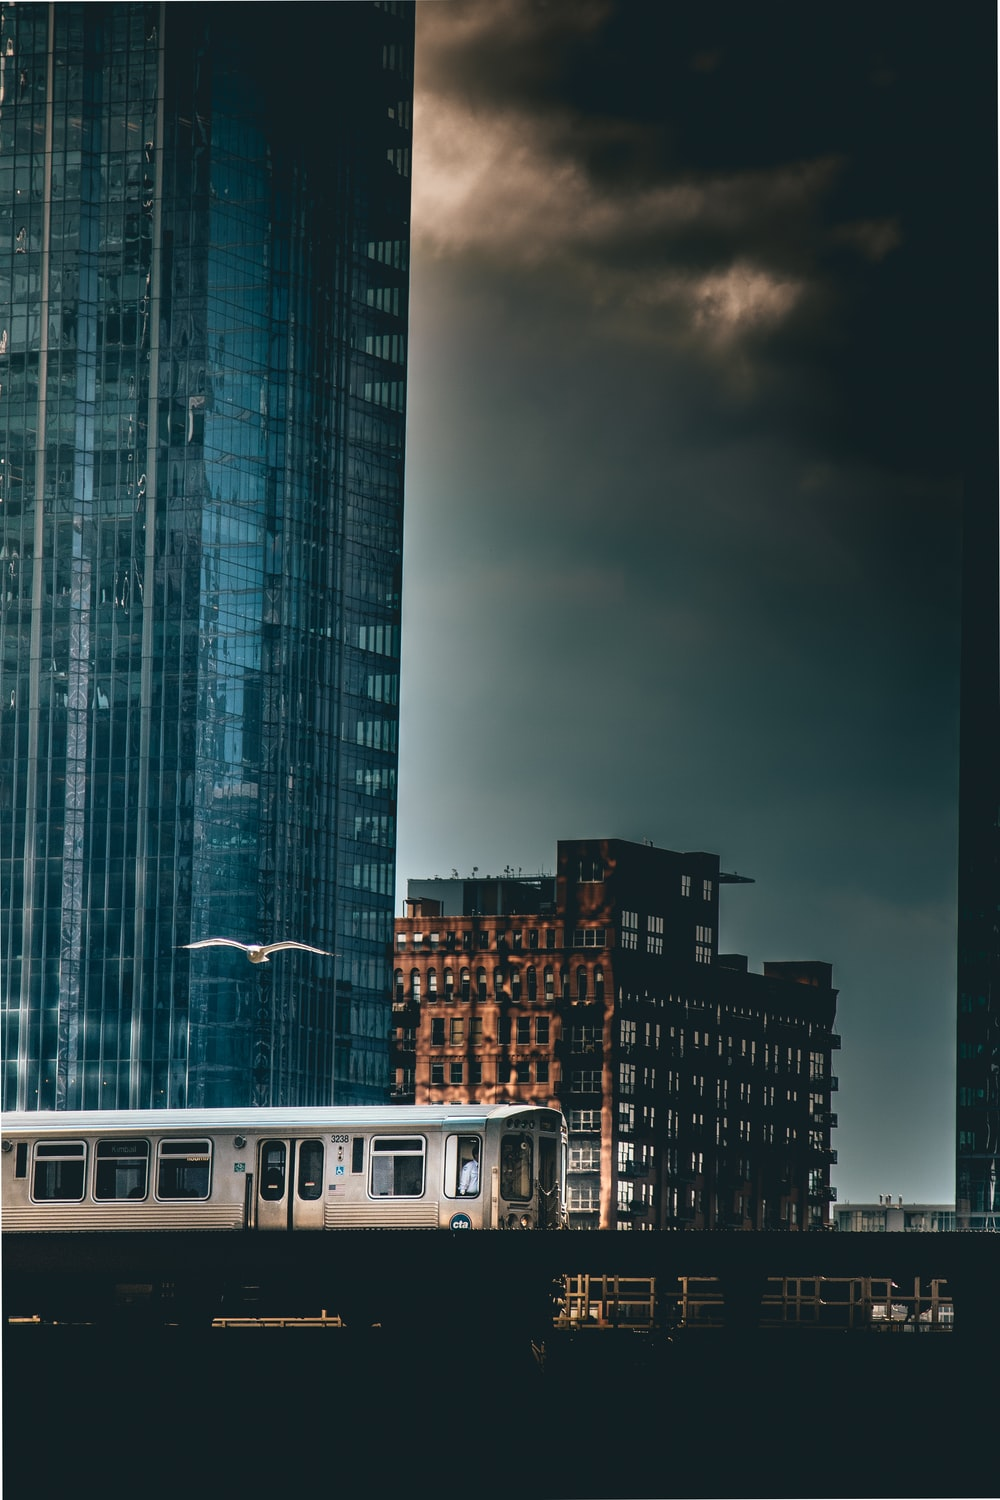 gray train passing by high-rise building